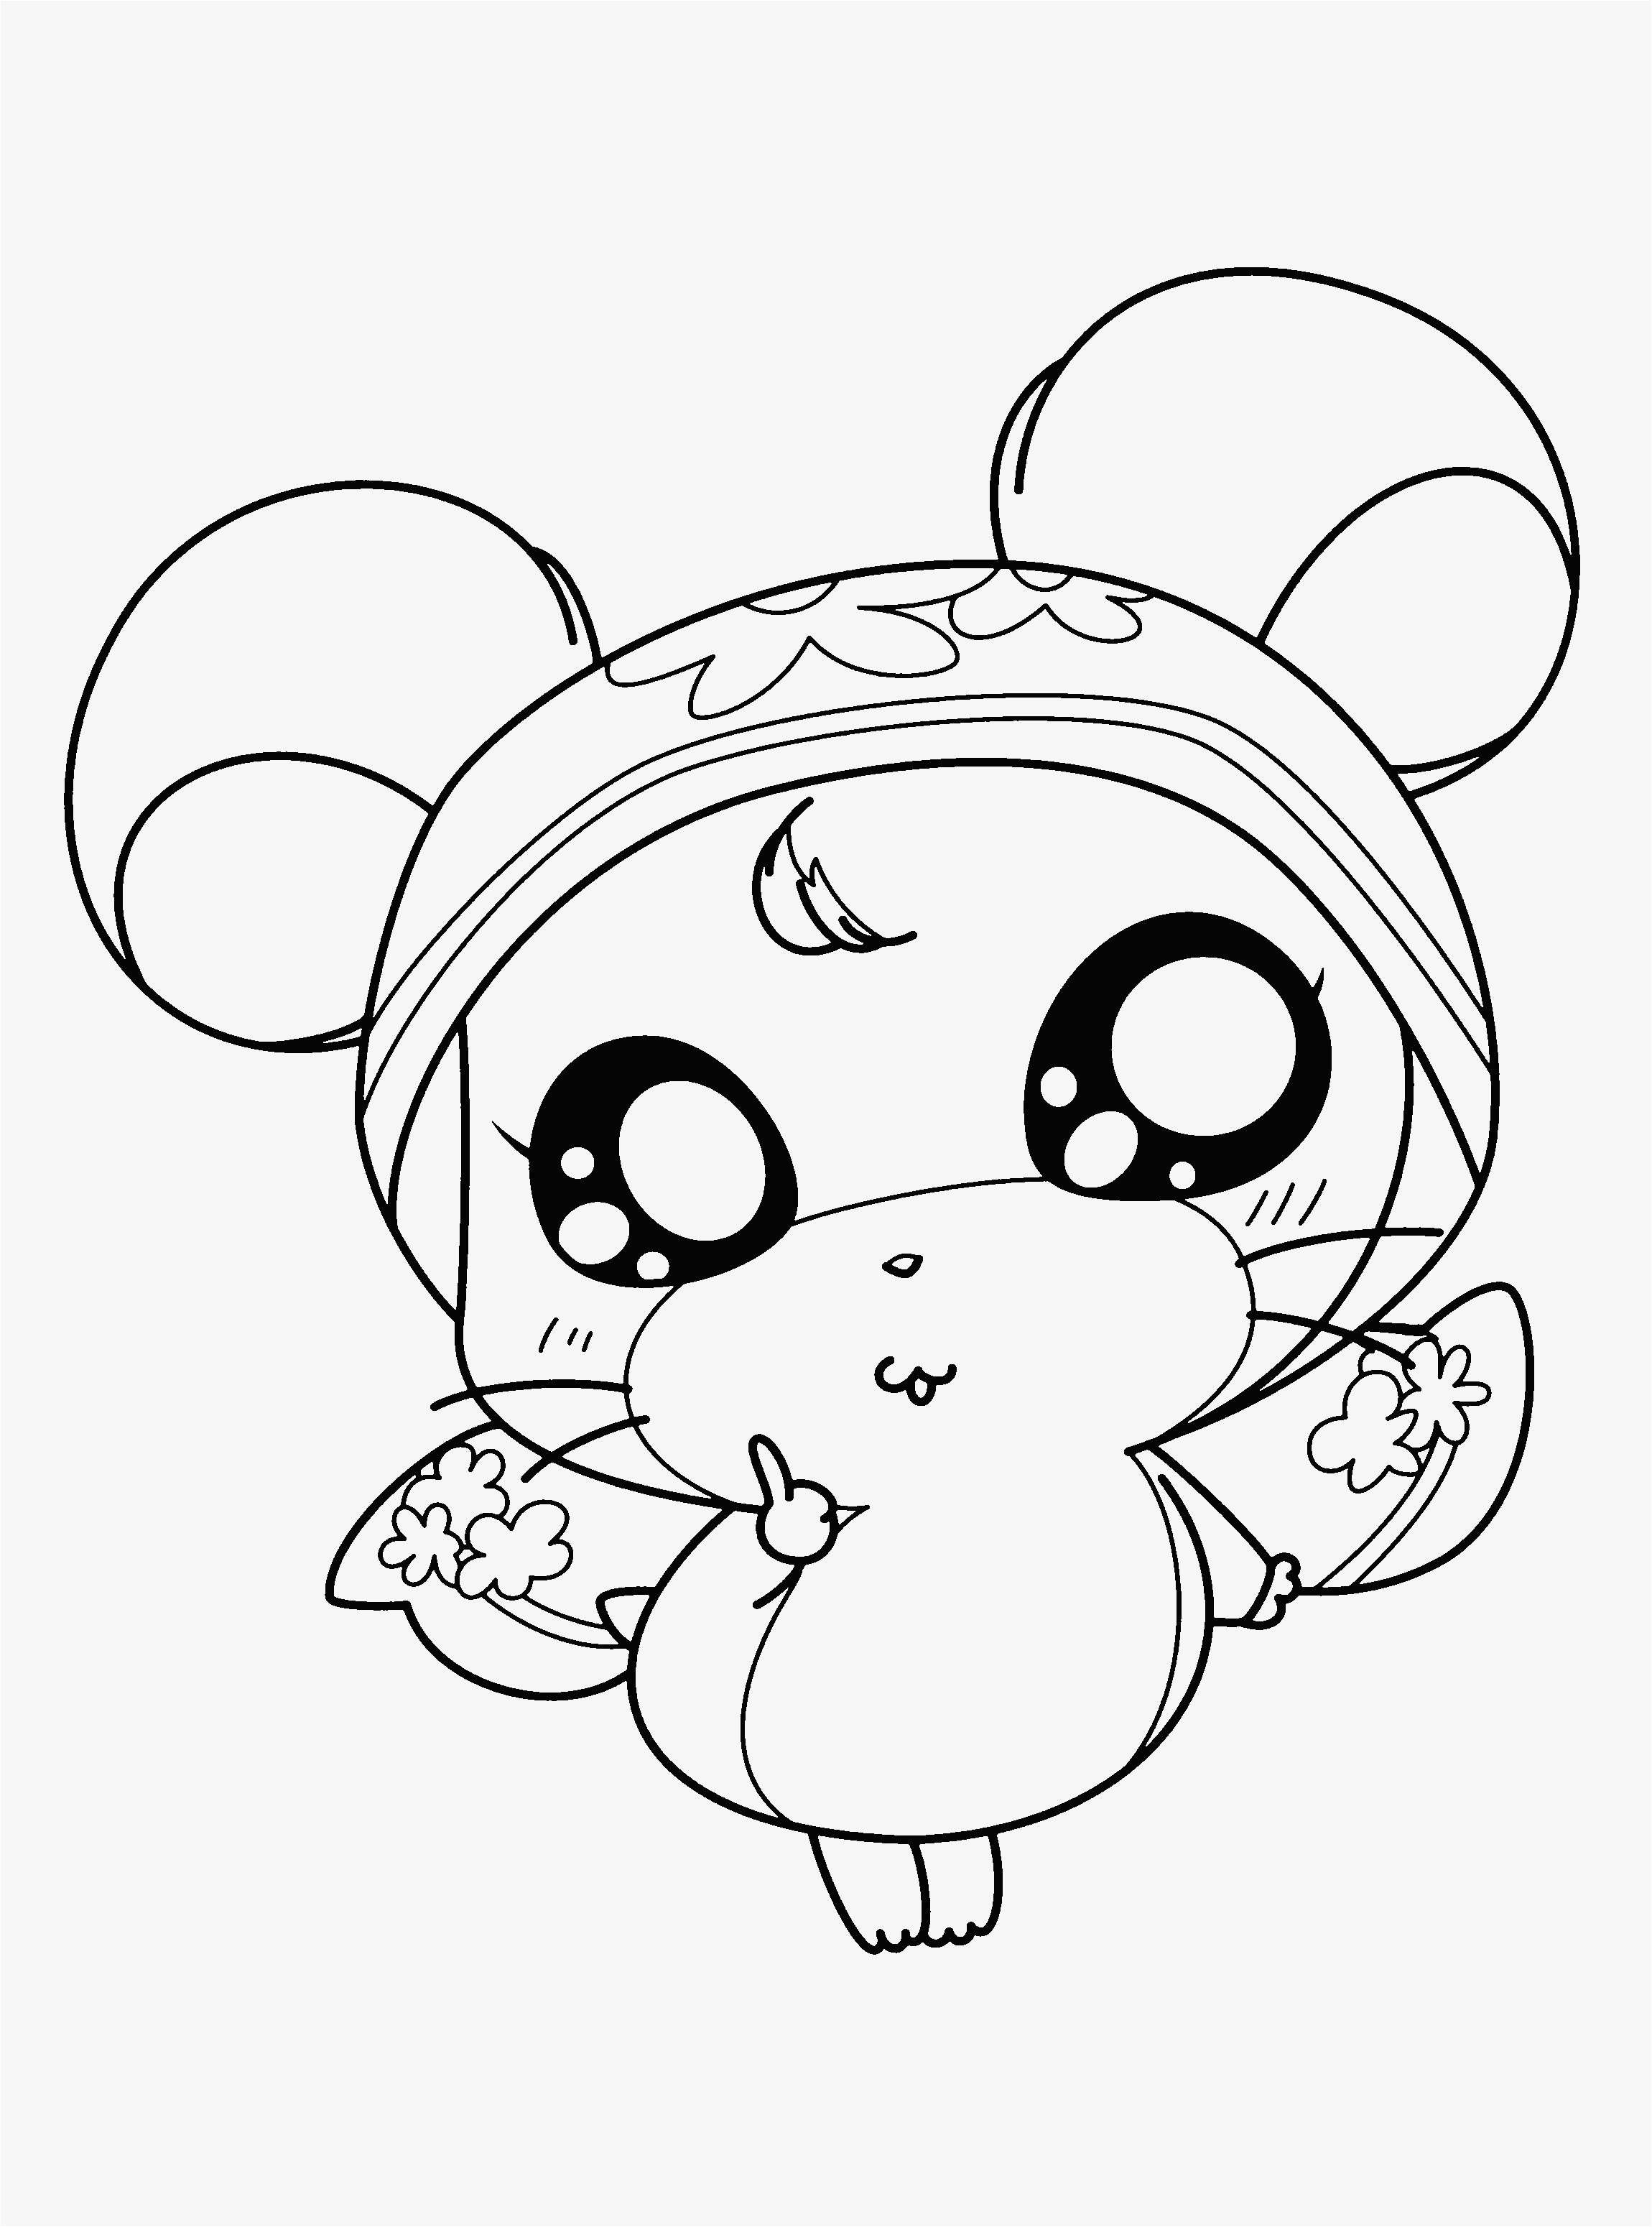 Squidoo Coloring Pages  Gallery 20m - To print for your project